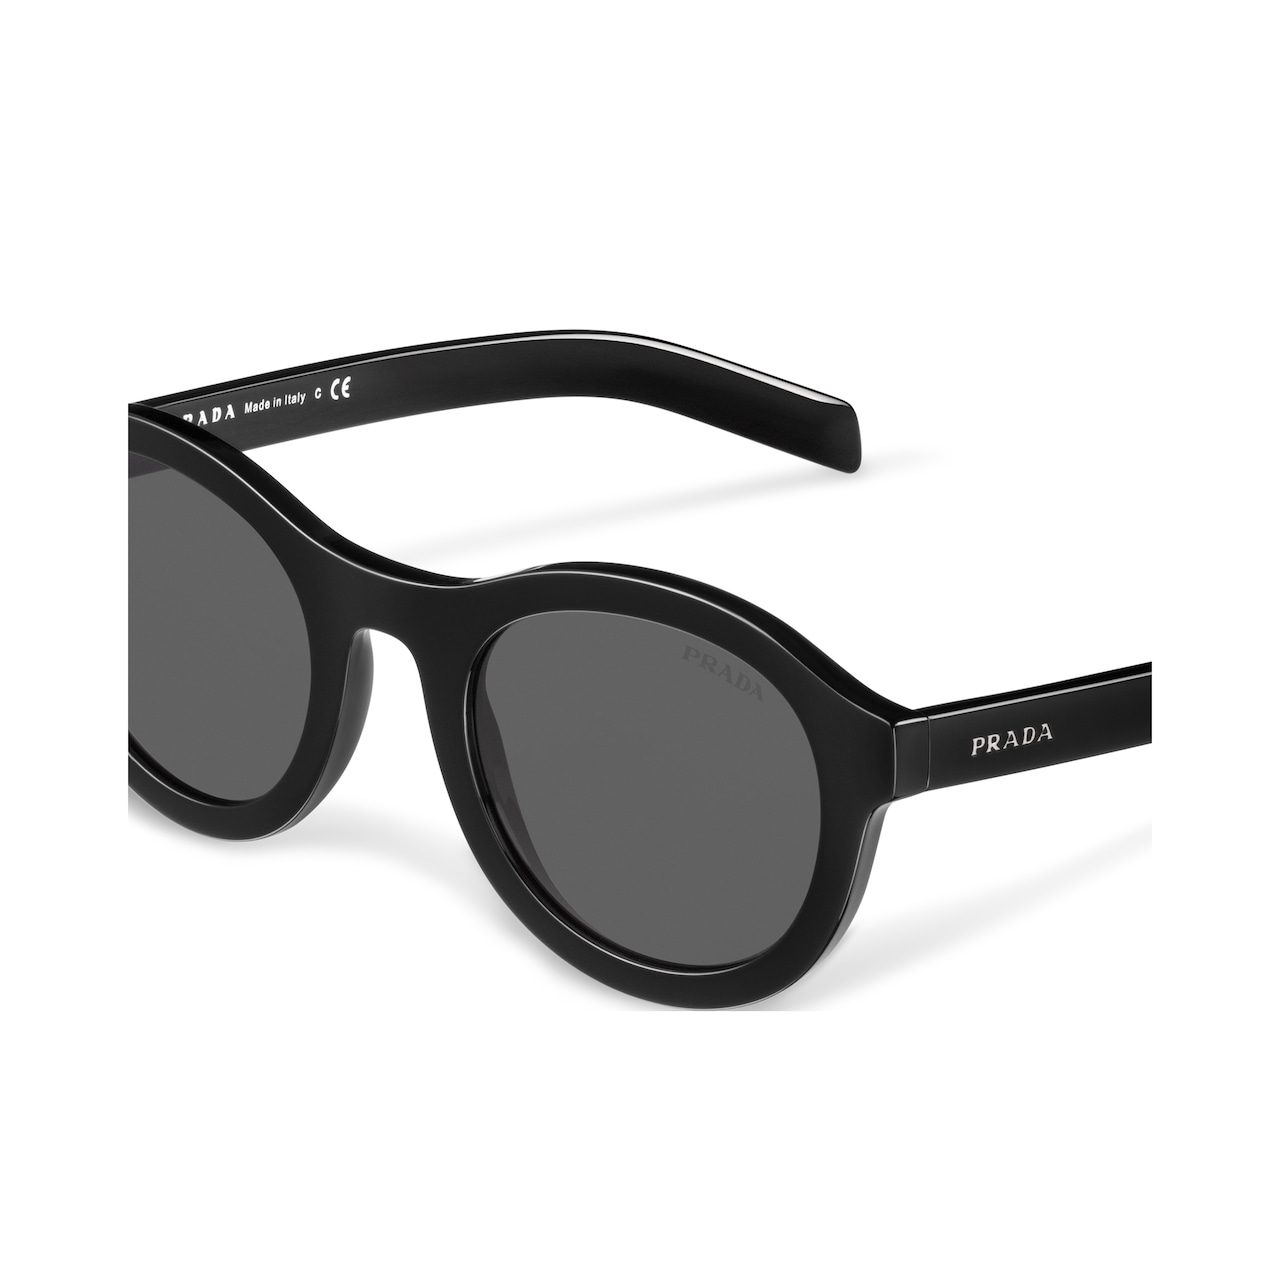 Prada Eyewear Collection sunglasses Alternative Fit